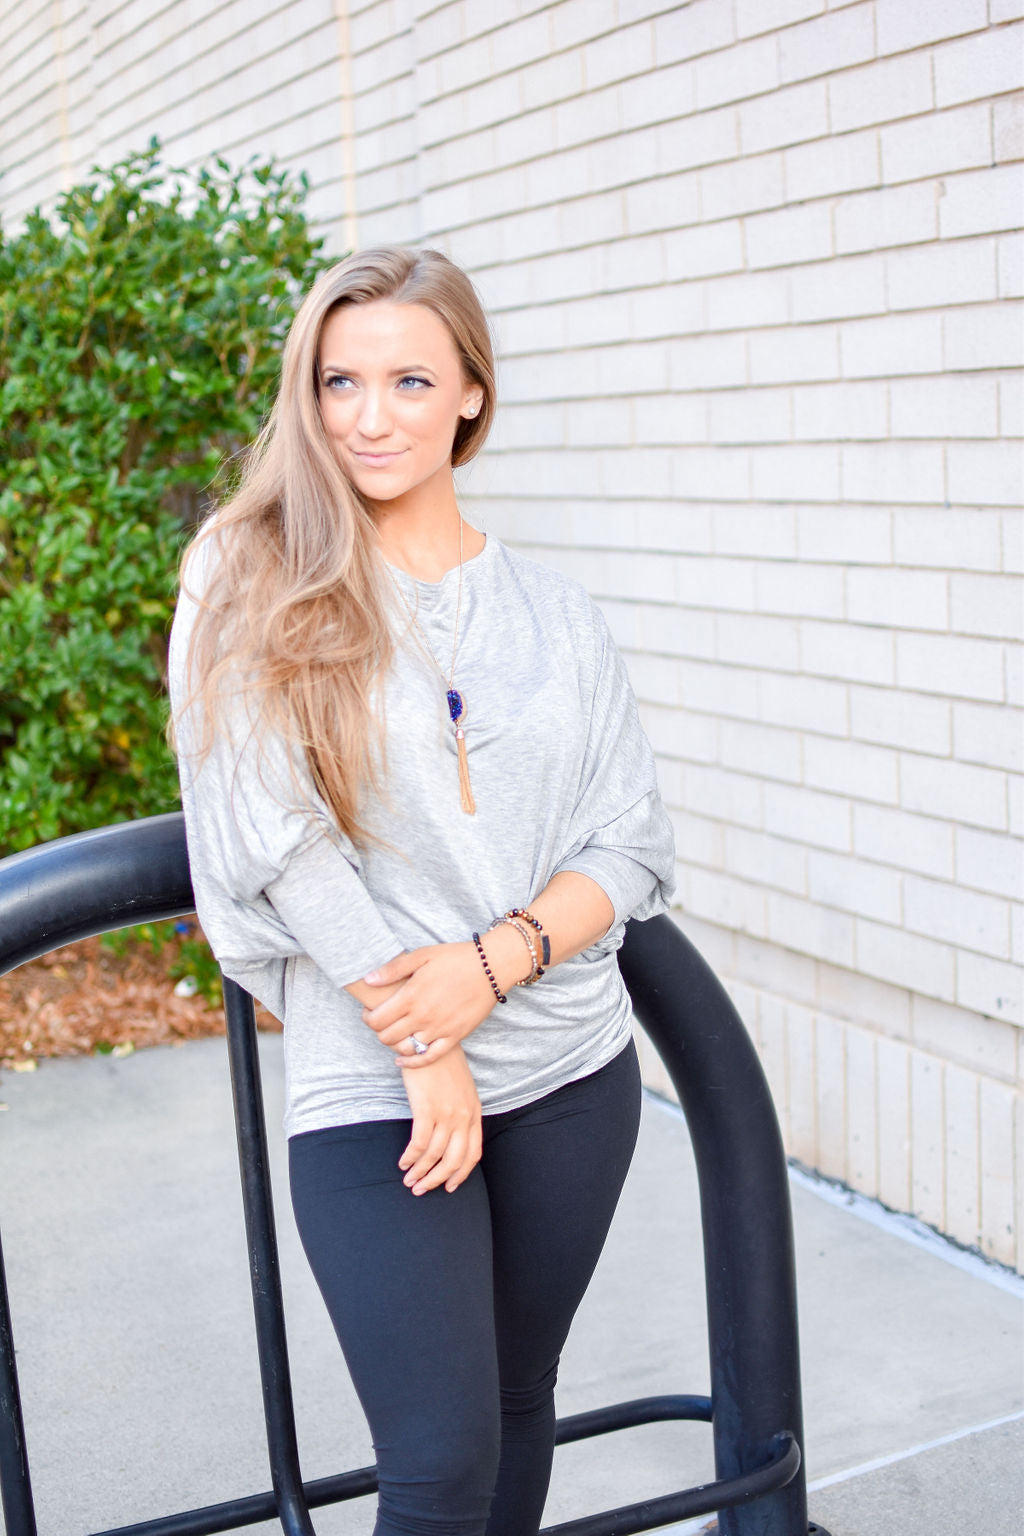 Perfect Pairing Outfit (Fits Size Medium or Large): Popcorn Cardigan, Grey Top, Necklace, Leggings & Earrings